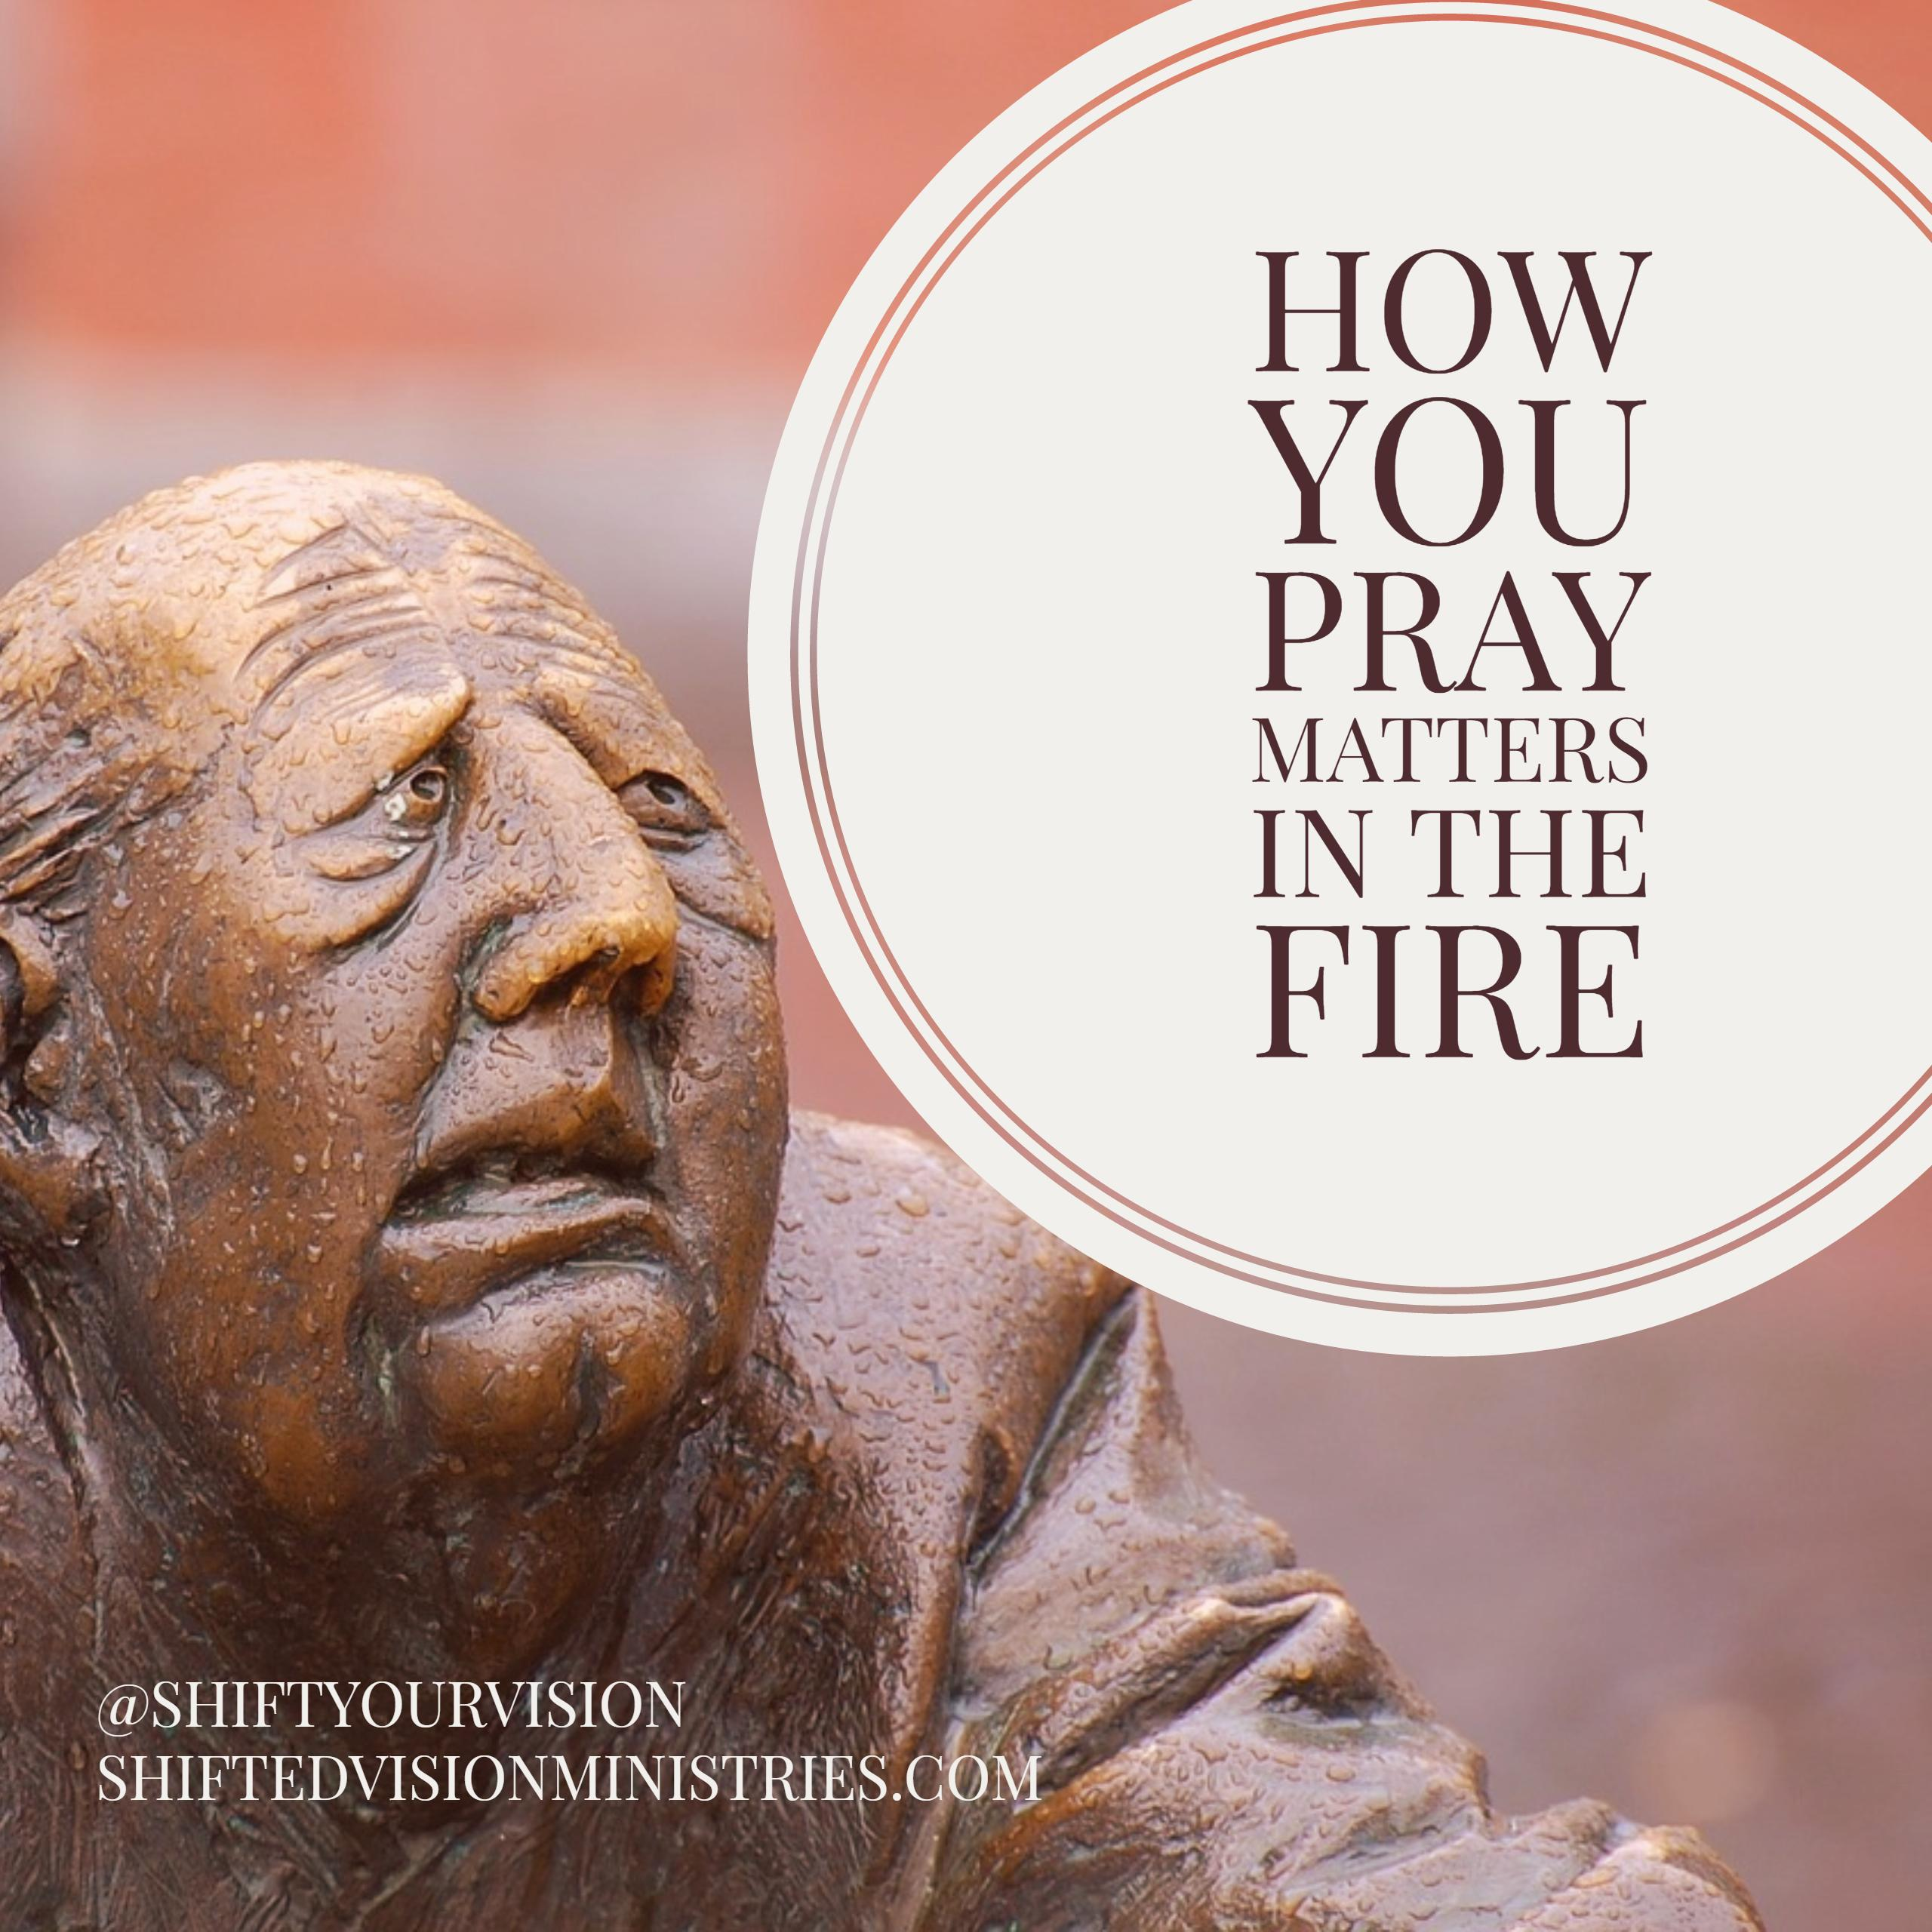 How You Pray Matters in the Fire